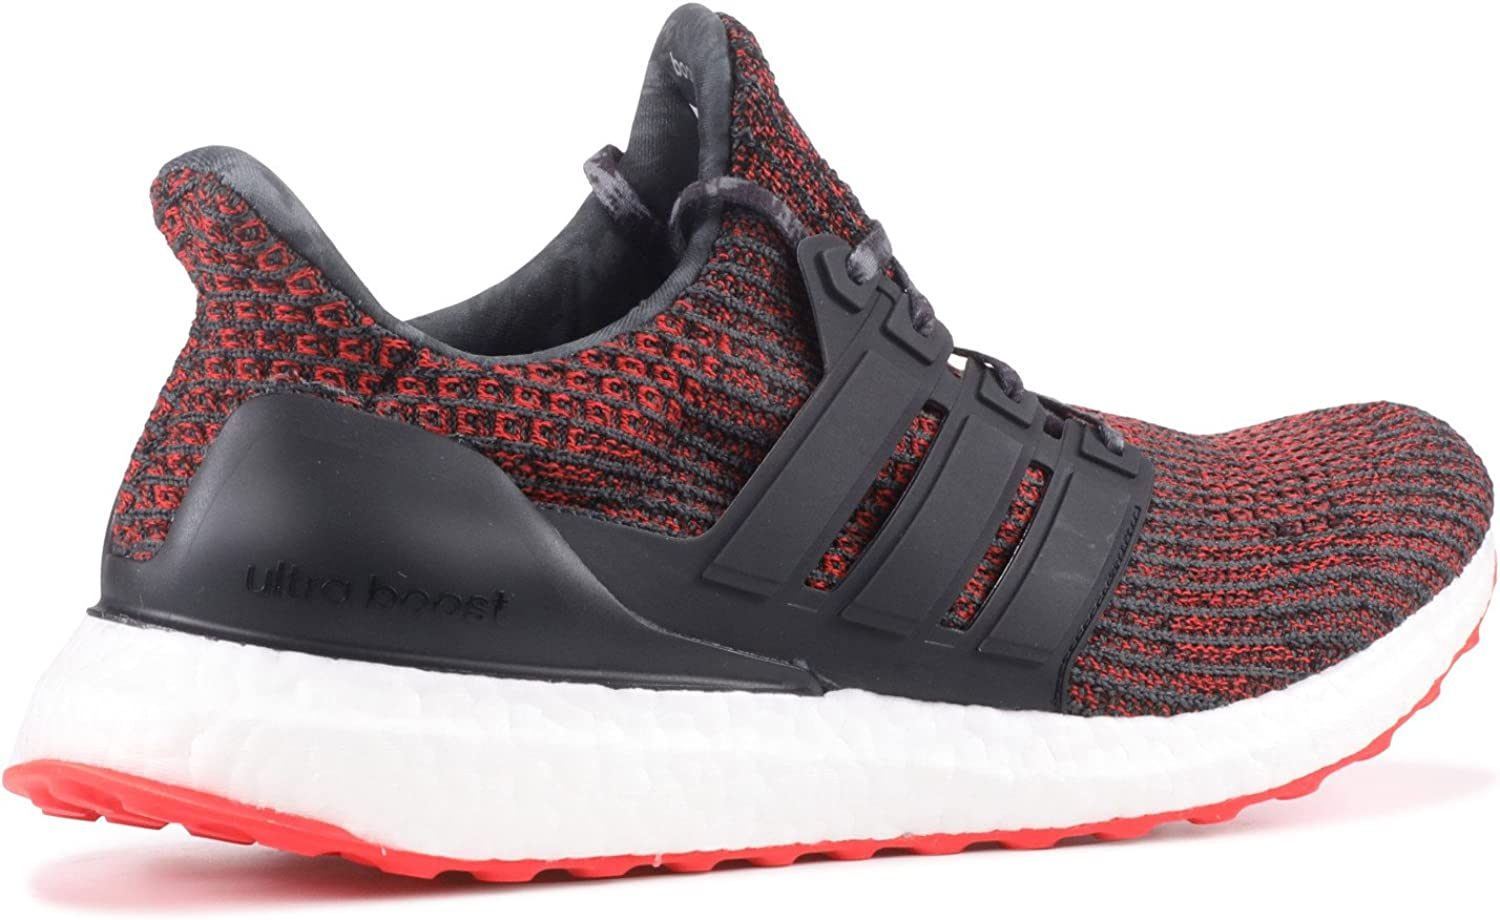 Ultraboost Trail Running Shoes